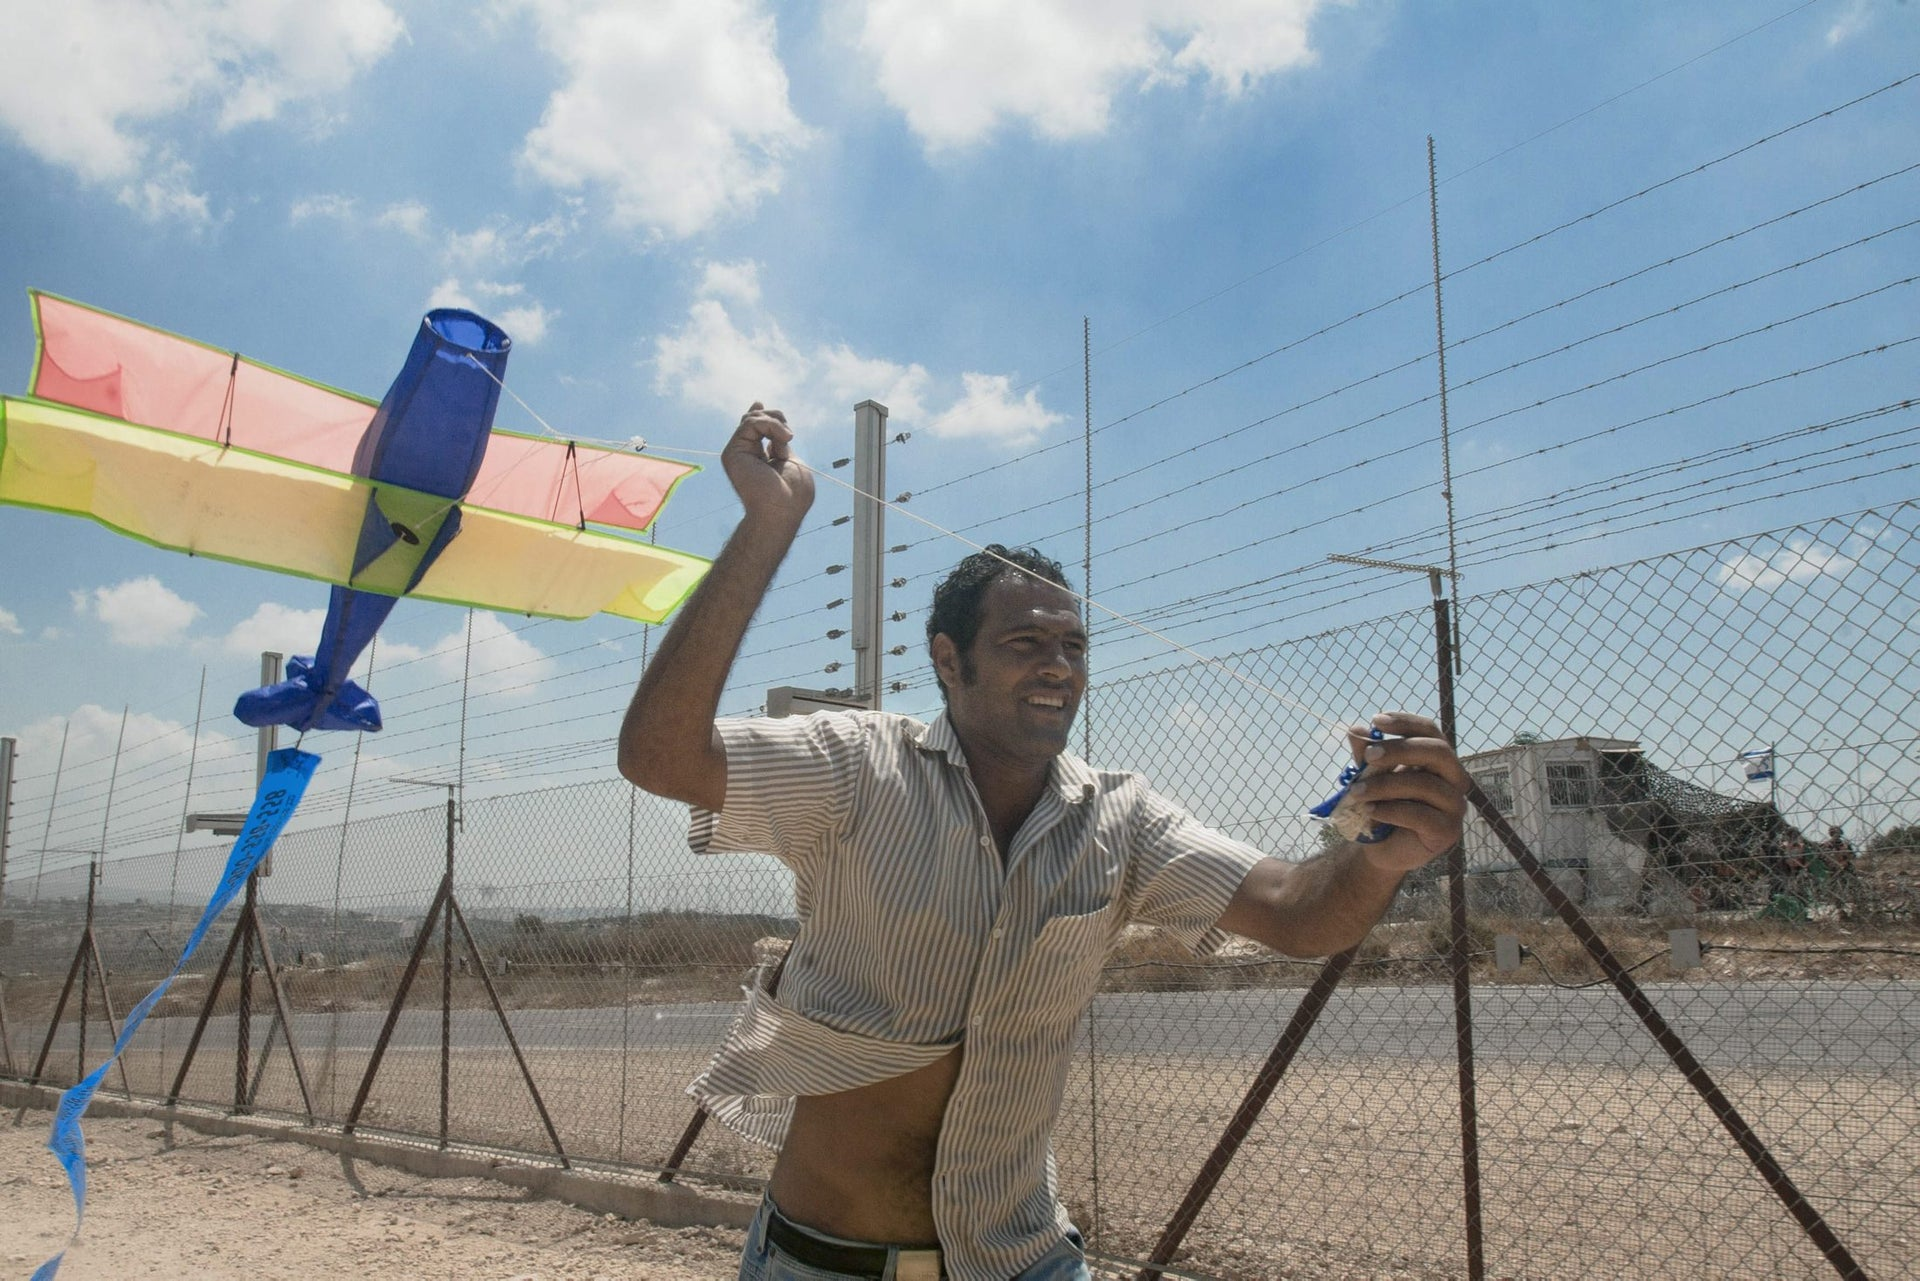 A photo of late Palestinian activist Bassem Ibrahim Abu Rahmah, from 'Activestills: Photography as Protest in Palestine/Israel.'